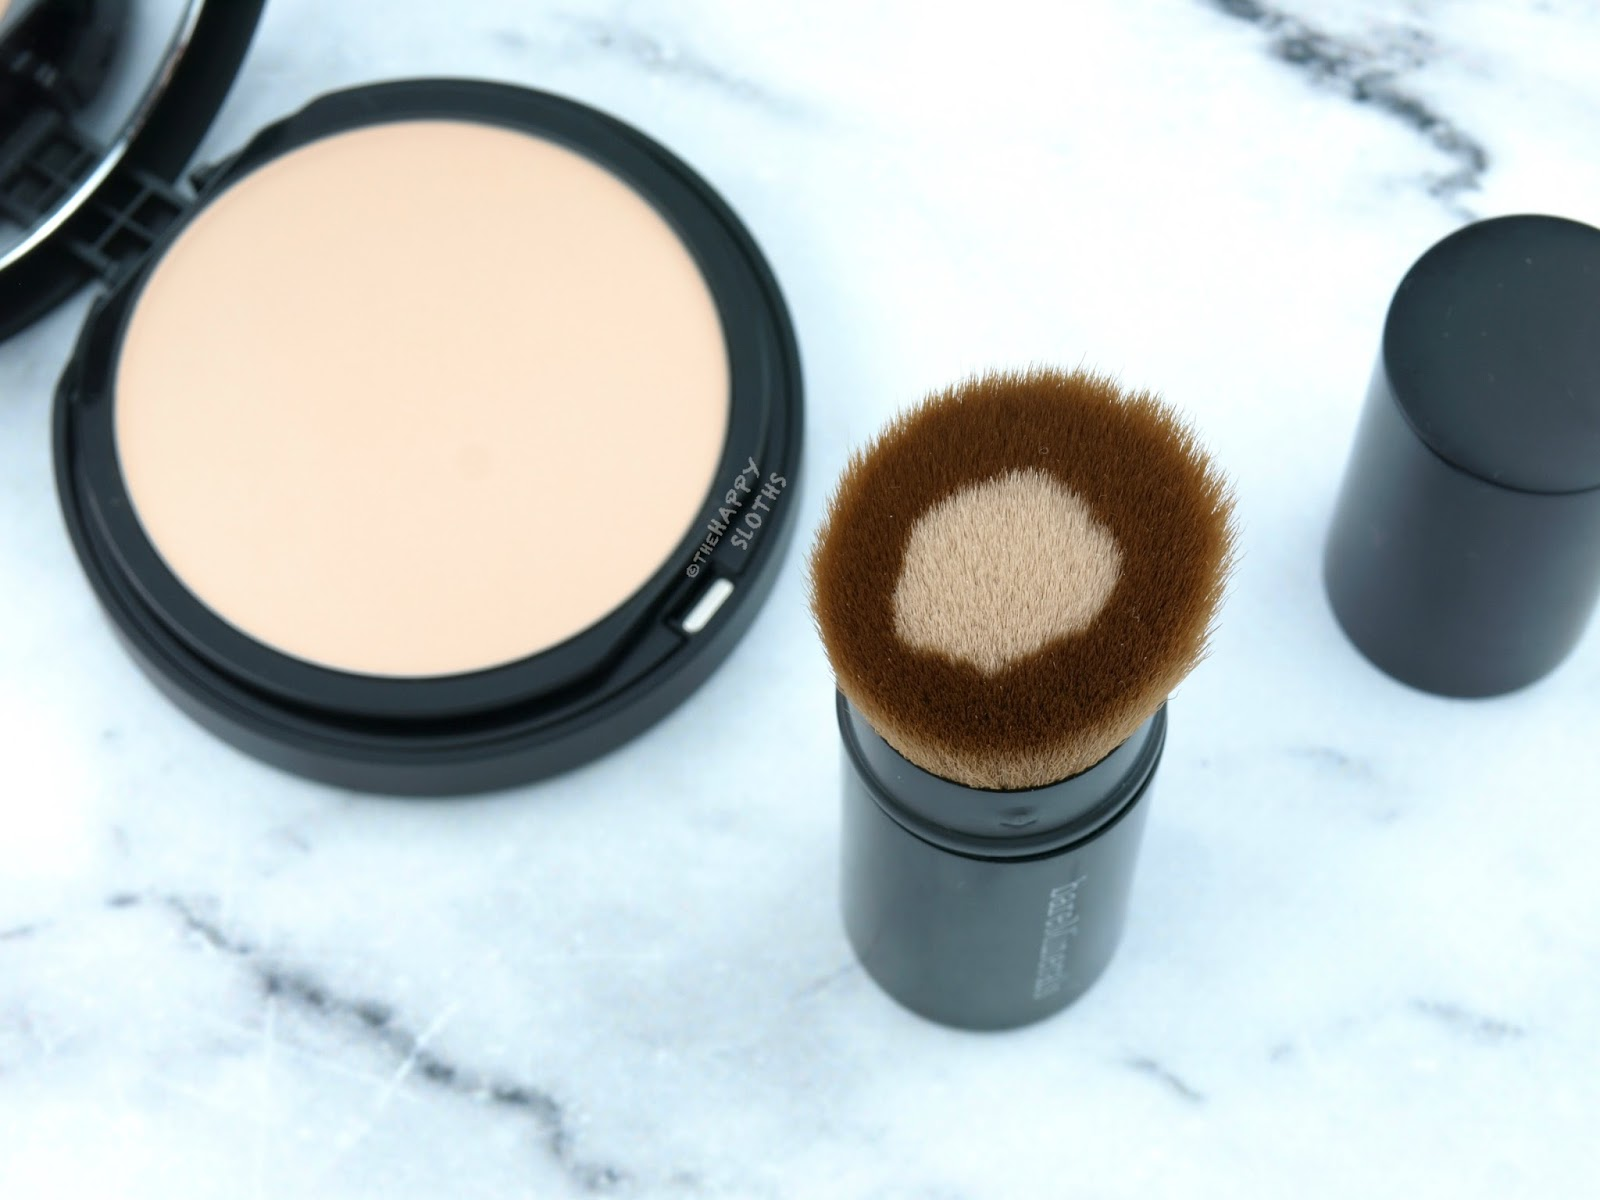 bareMinerals BAREPRO Core Coverage Brush: Review and Swatches